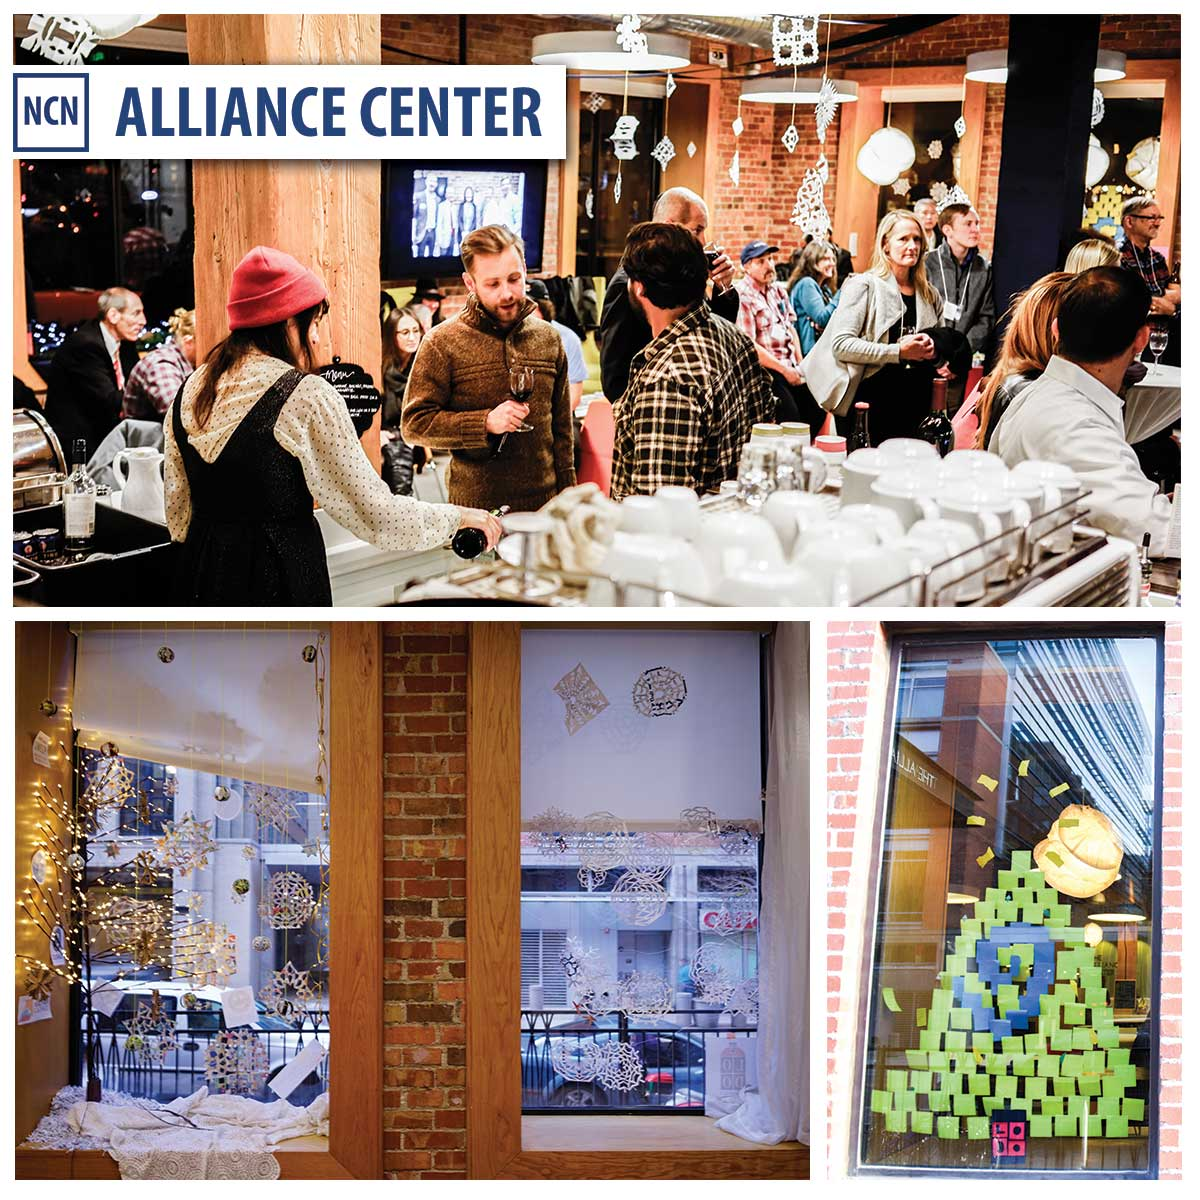 Alliance Center Holiday Decor